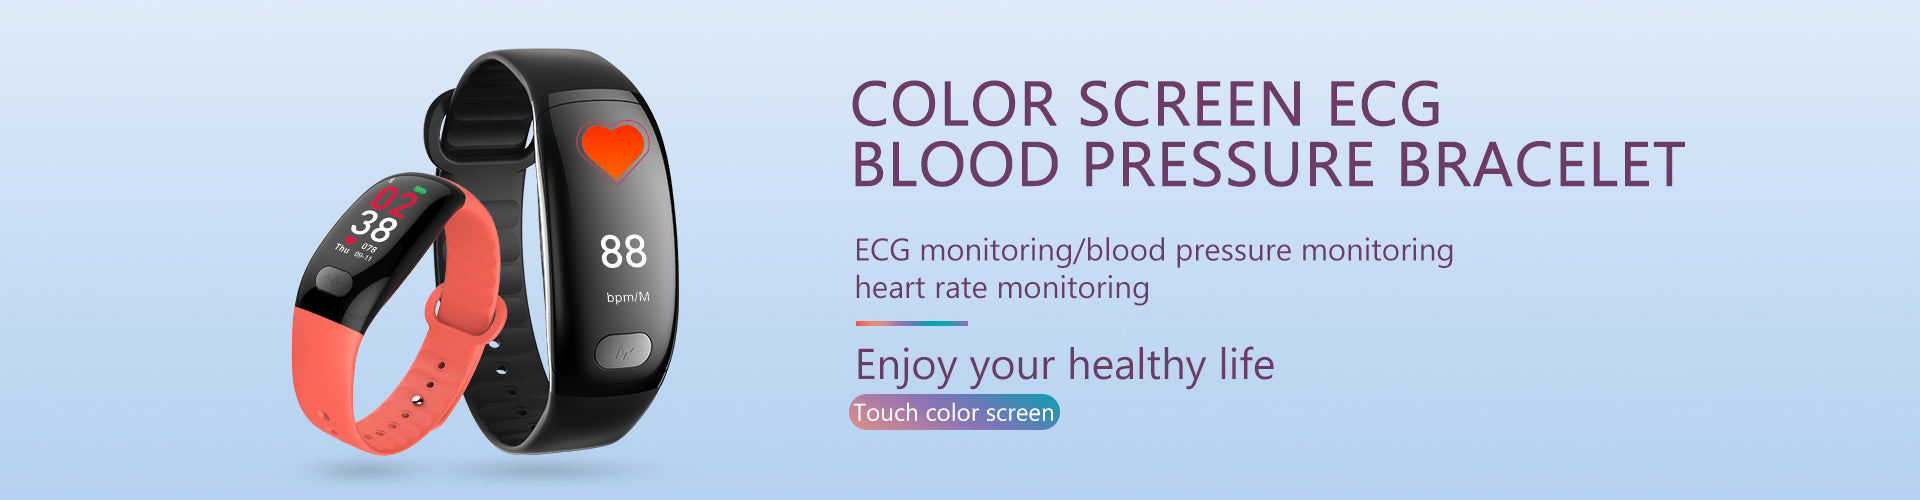 Color Screen ECG Blood Pressure Smart Bracelet